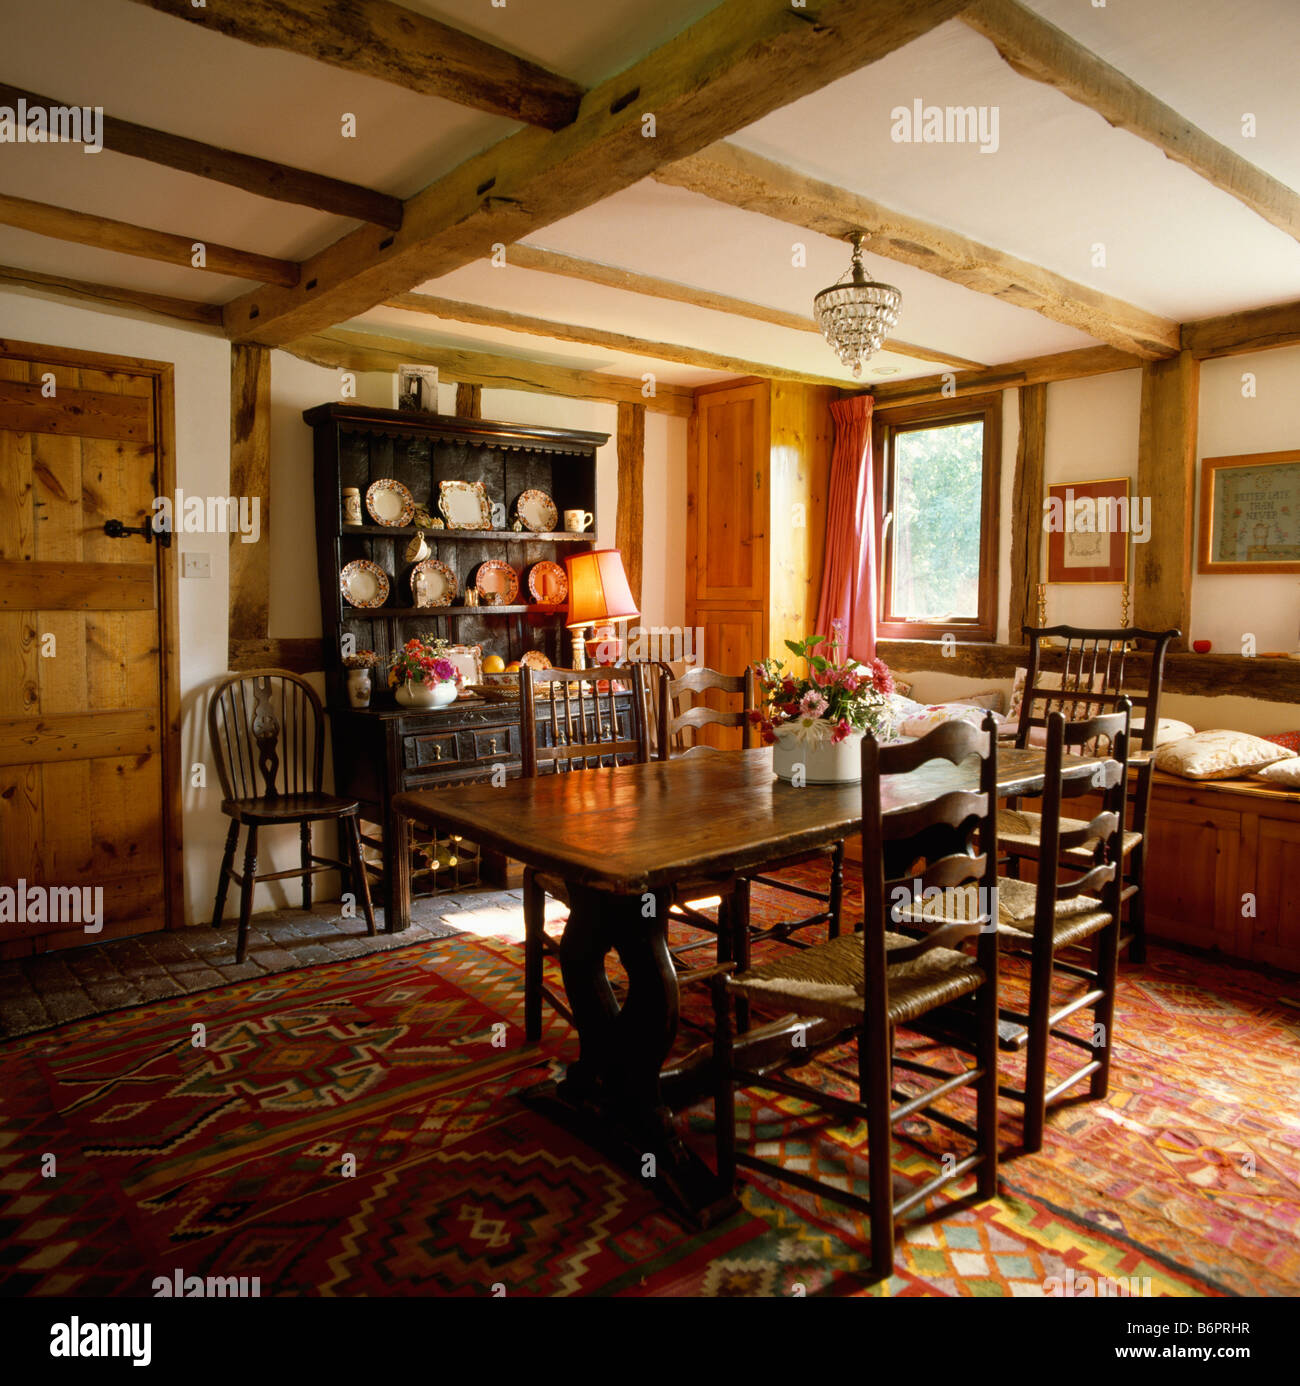 Small Country Table And Chairs: Antique Ladderback Chairs And Wooden Table In Small Country Dining Stock Photo: 21399779